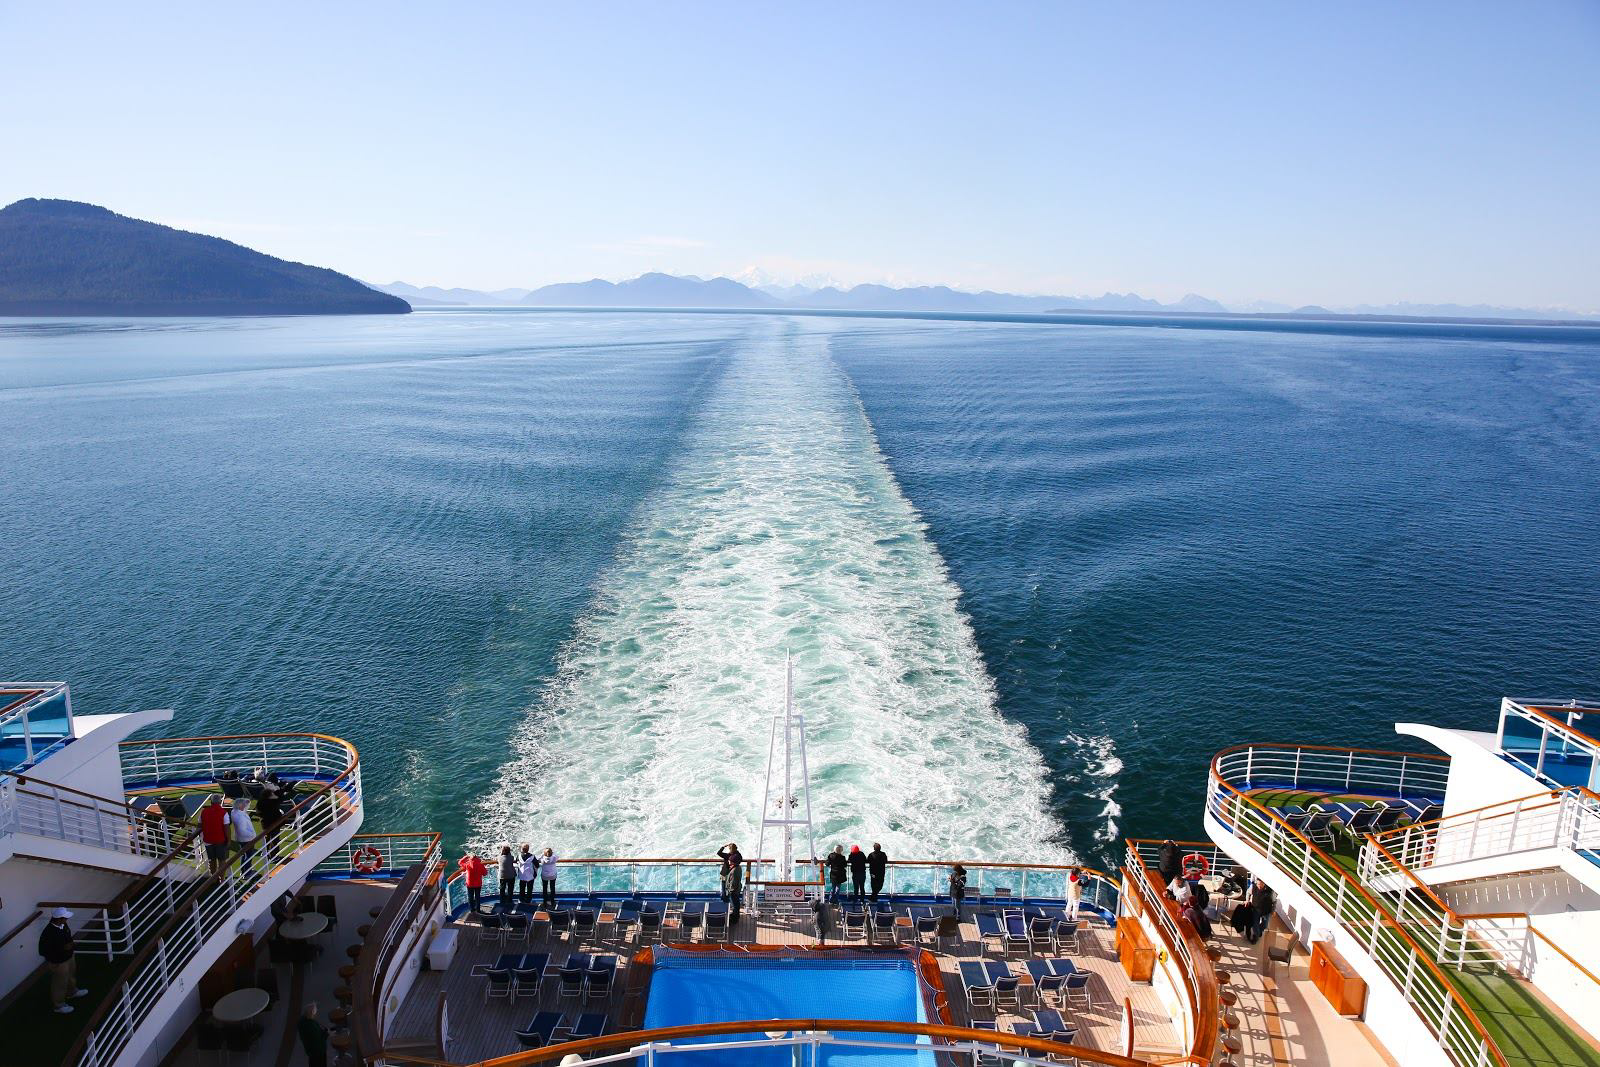 The View From The Back Of The Ship